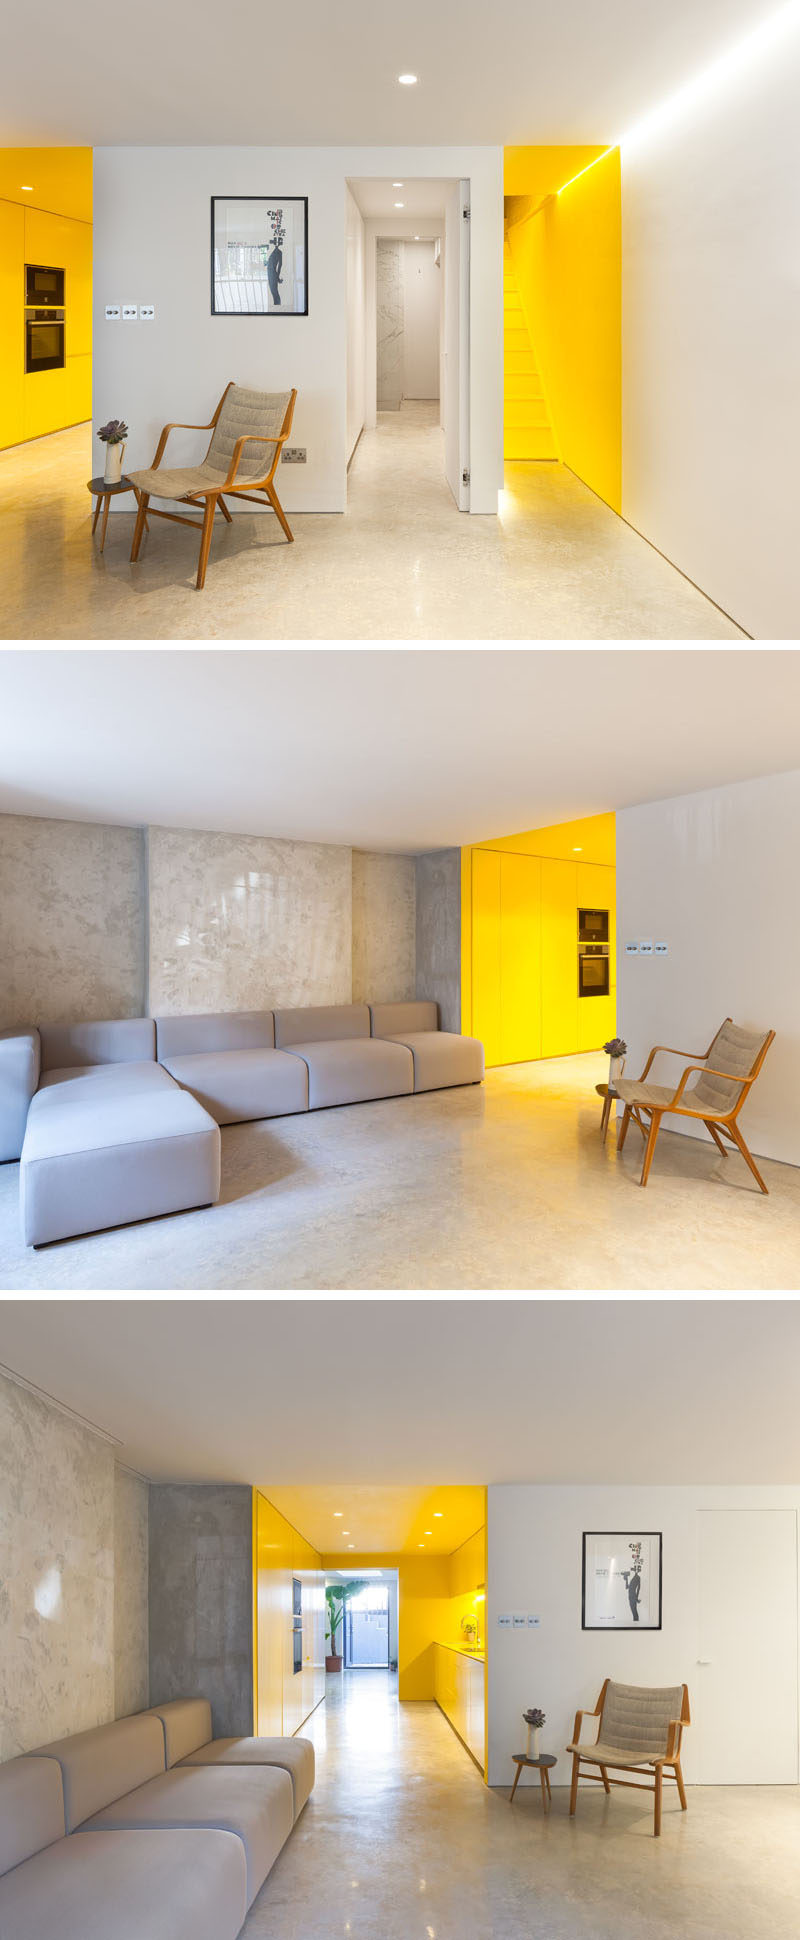 At the bottom of the yellow stairs is a living room that's bright white. A soft grey couch complements the polished, light-toned concrete that's been used for the floor. Off to the side is the entrance to a bold yellow kitchen. #Couch #Yellow #YellowStairs #YellowKitchen